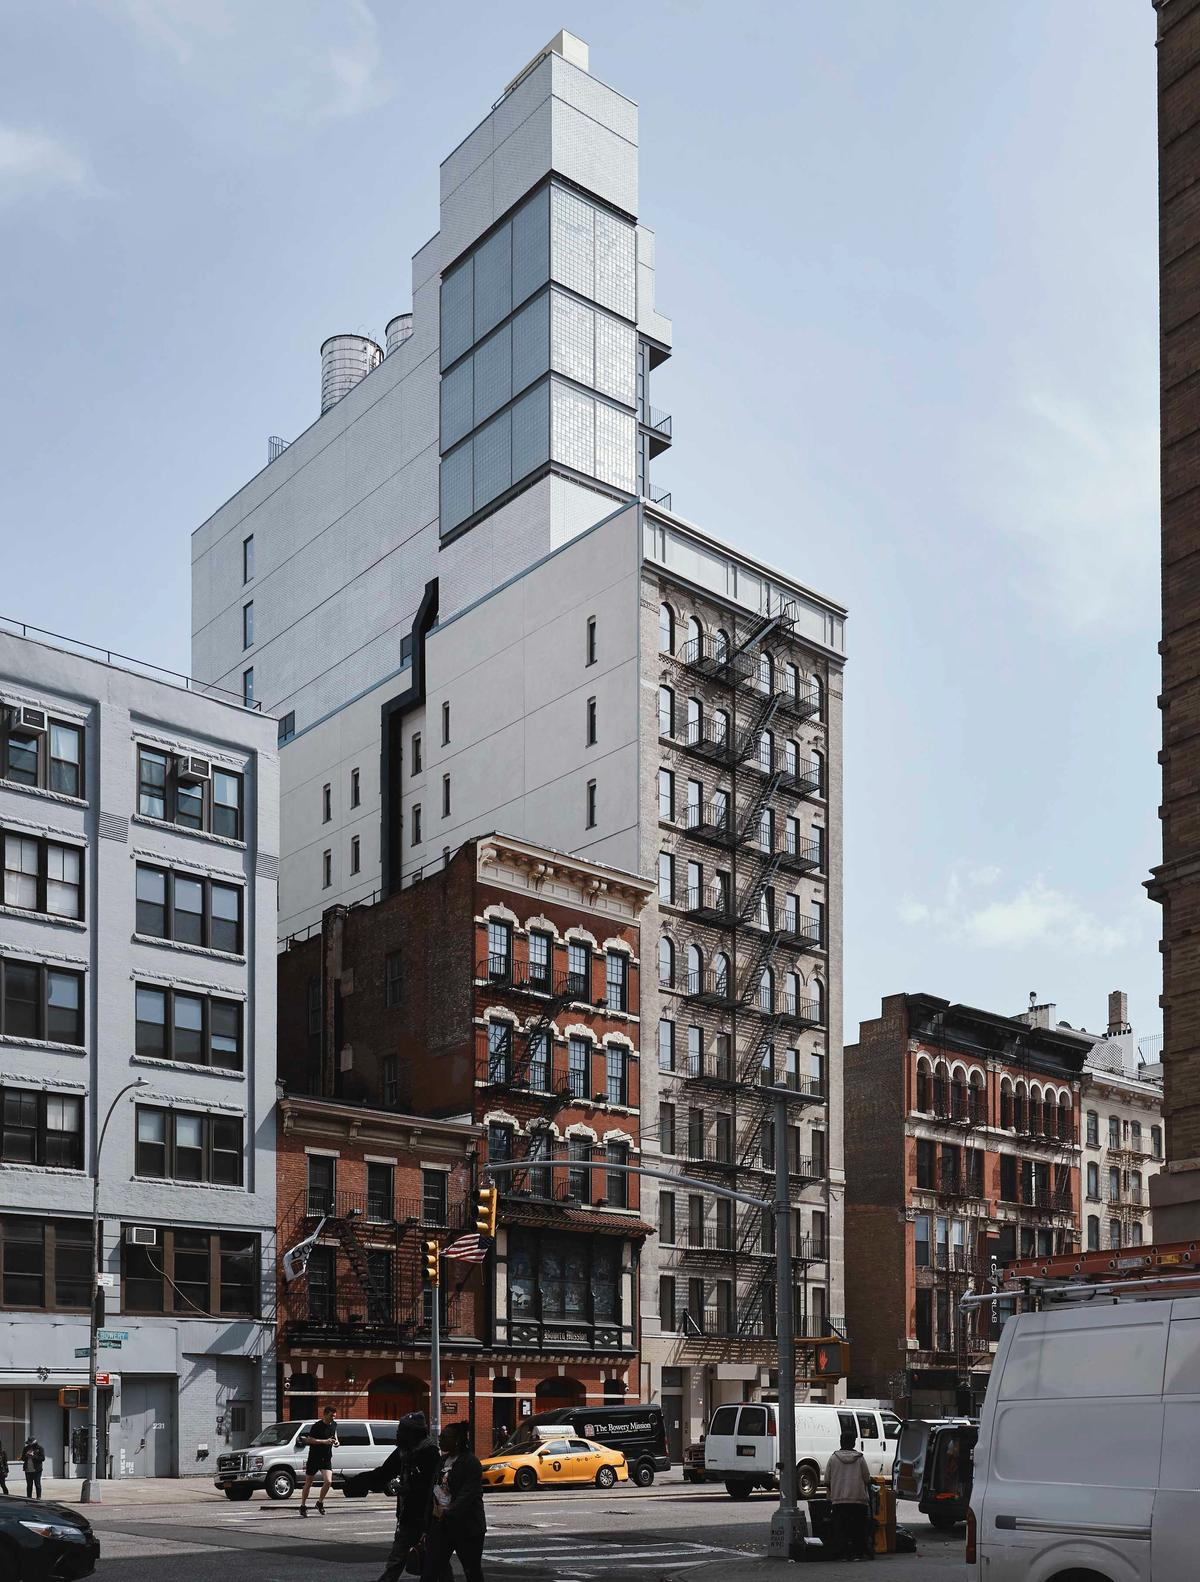 Sister City's facade, a combination of old and new, shining above the Bowery